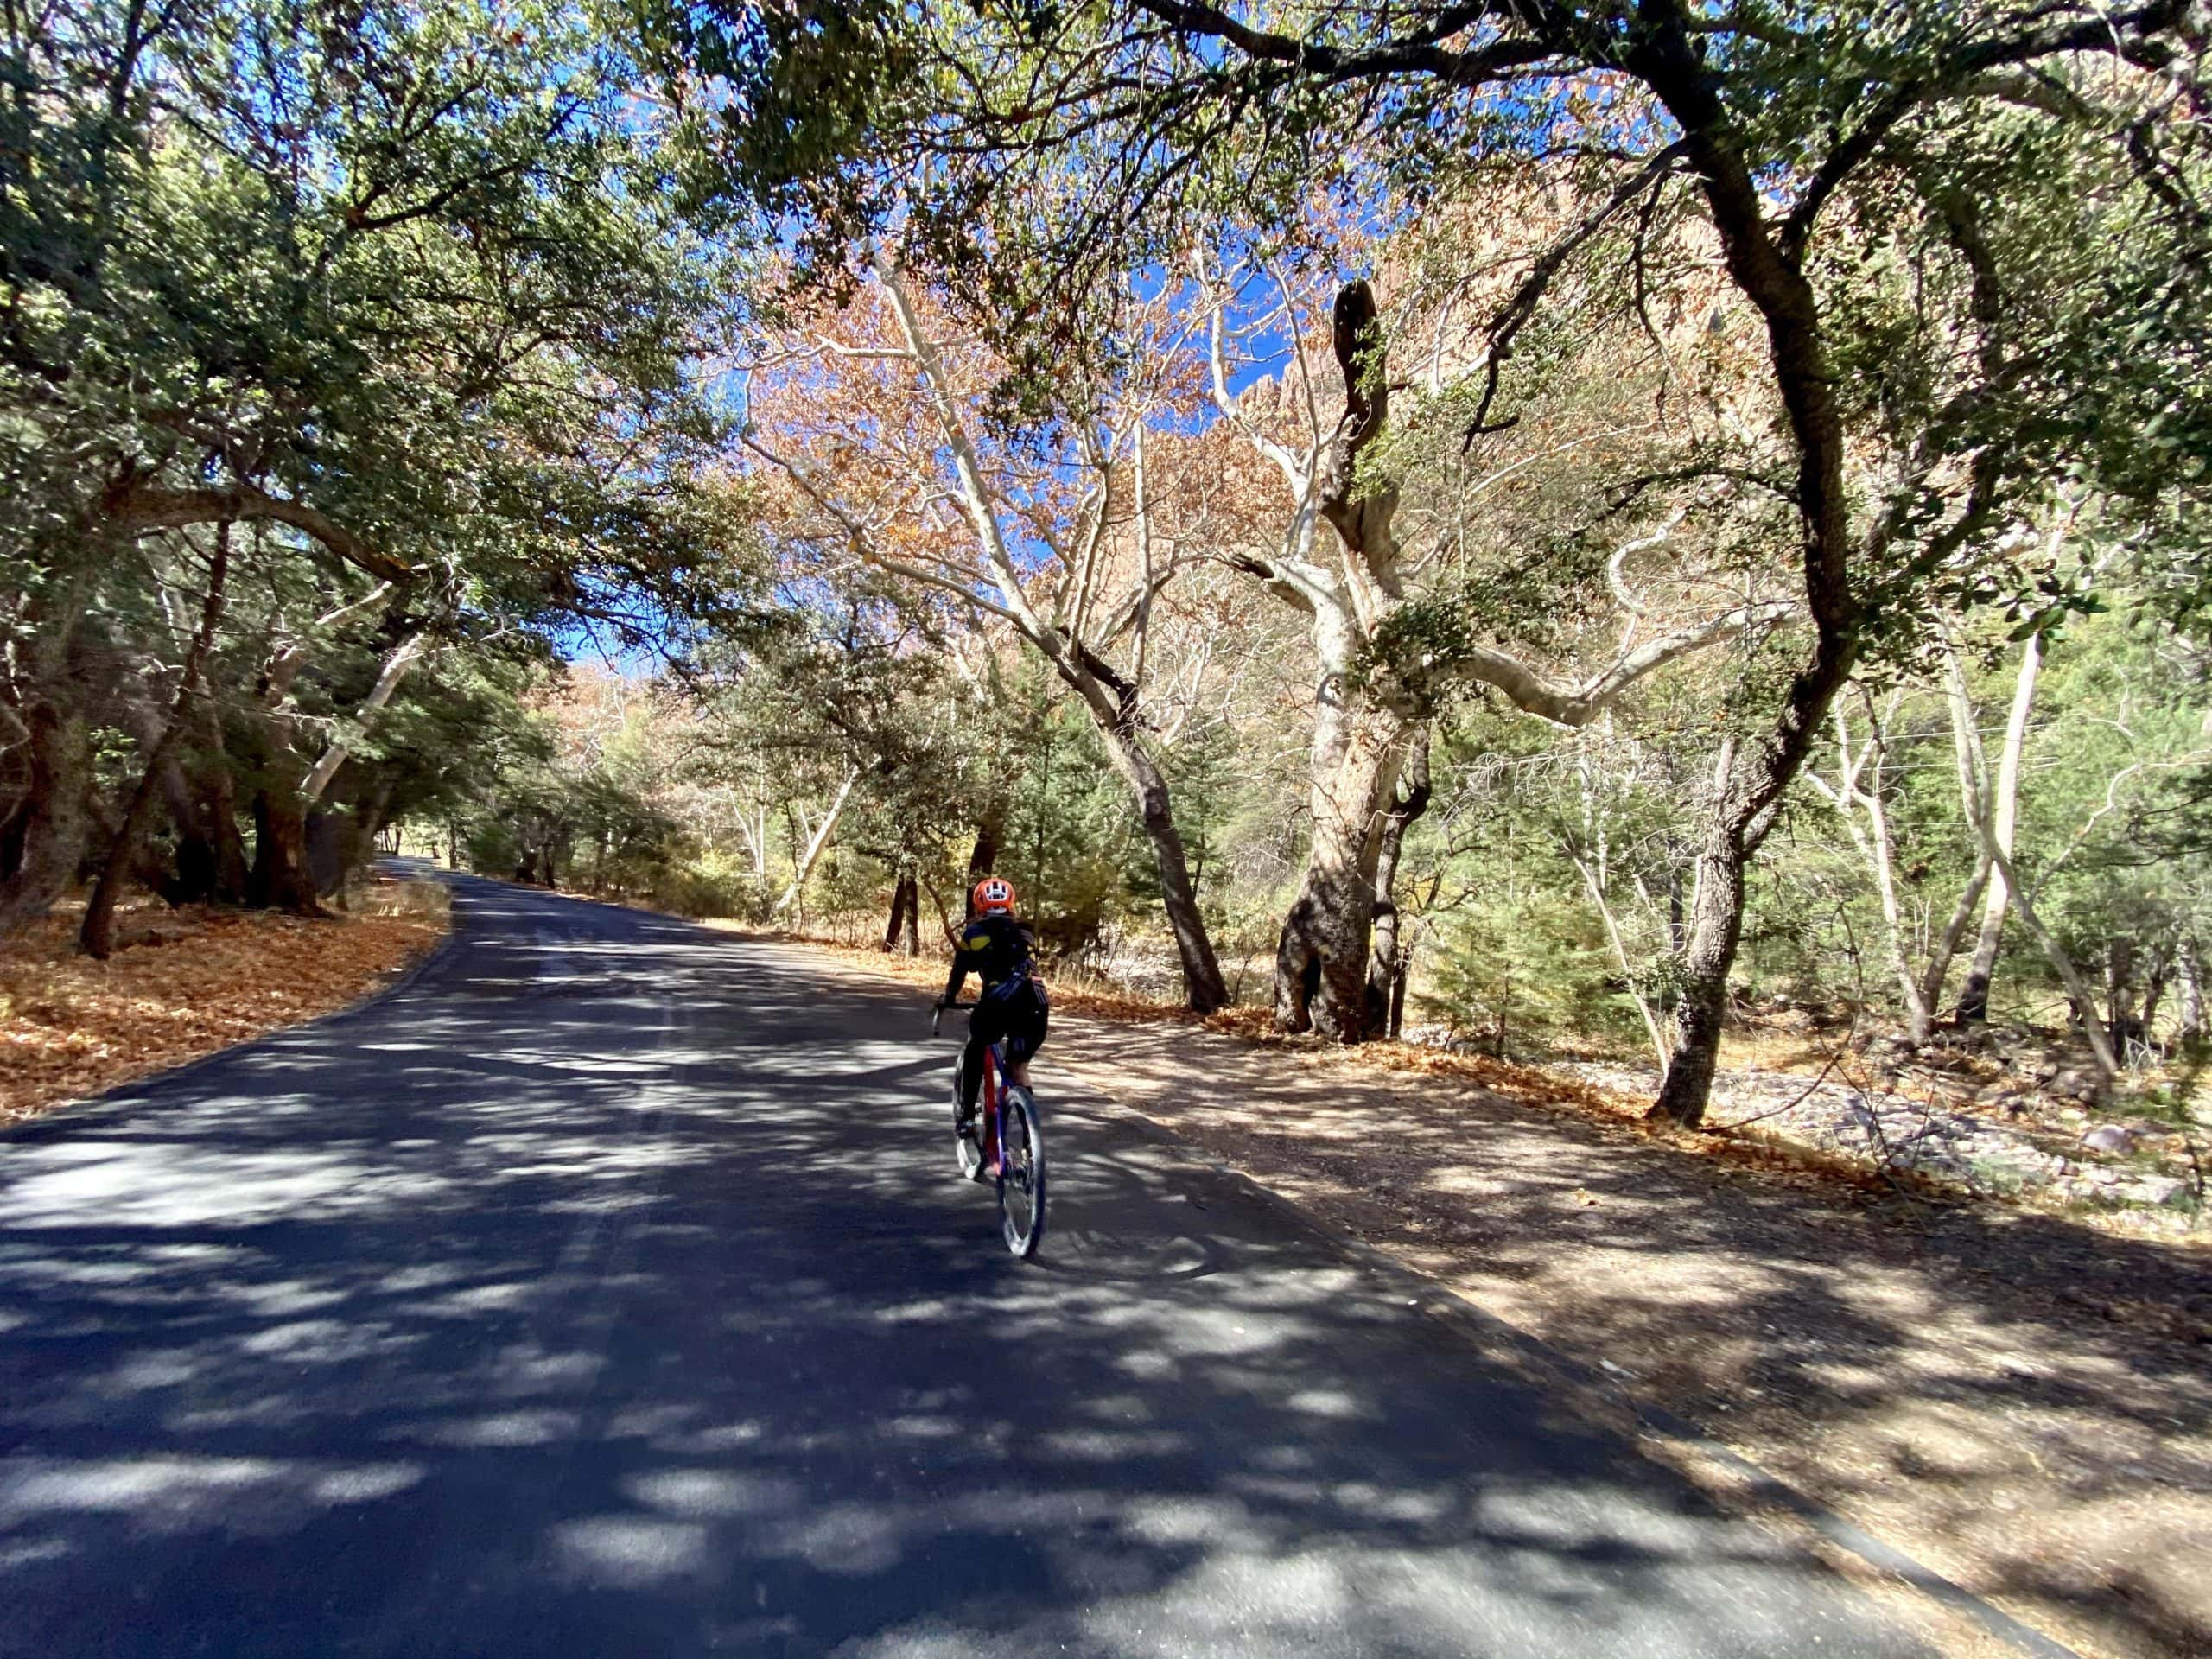 Cyclist under heavy umbrella of trees on Cave Creek Canyon road.